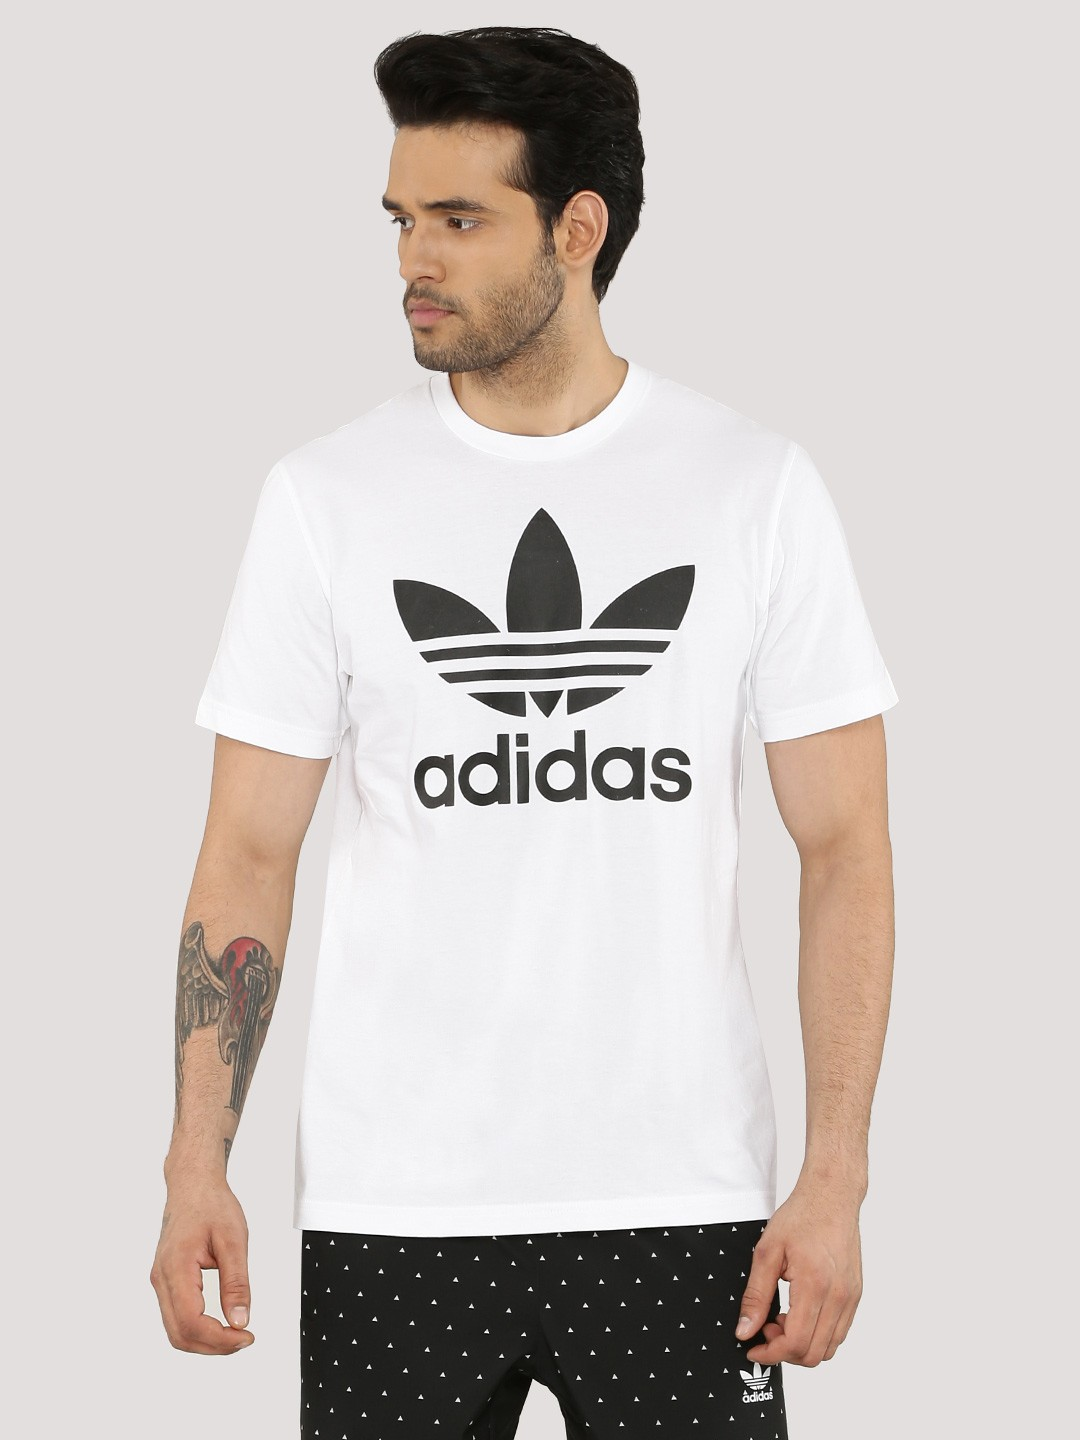 Buy trefoil t shirt for men men 39 s white t shirts online for Adidas lotus t shirt